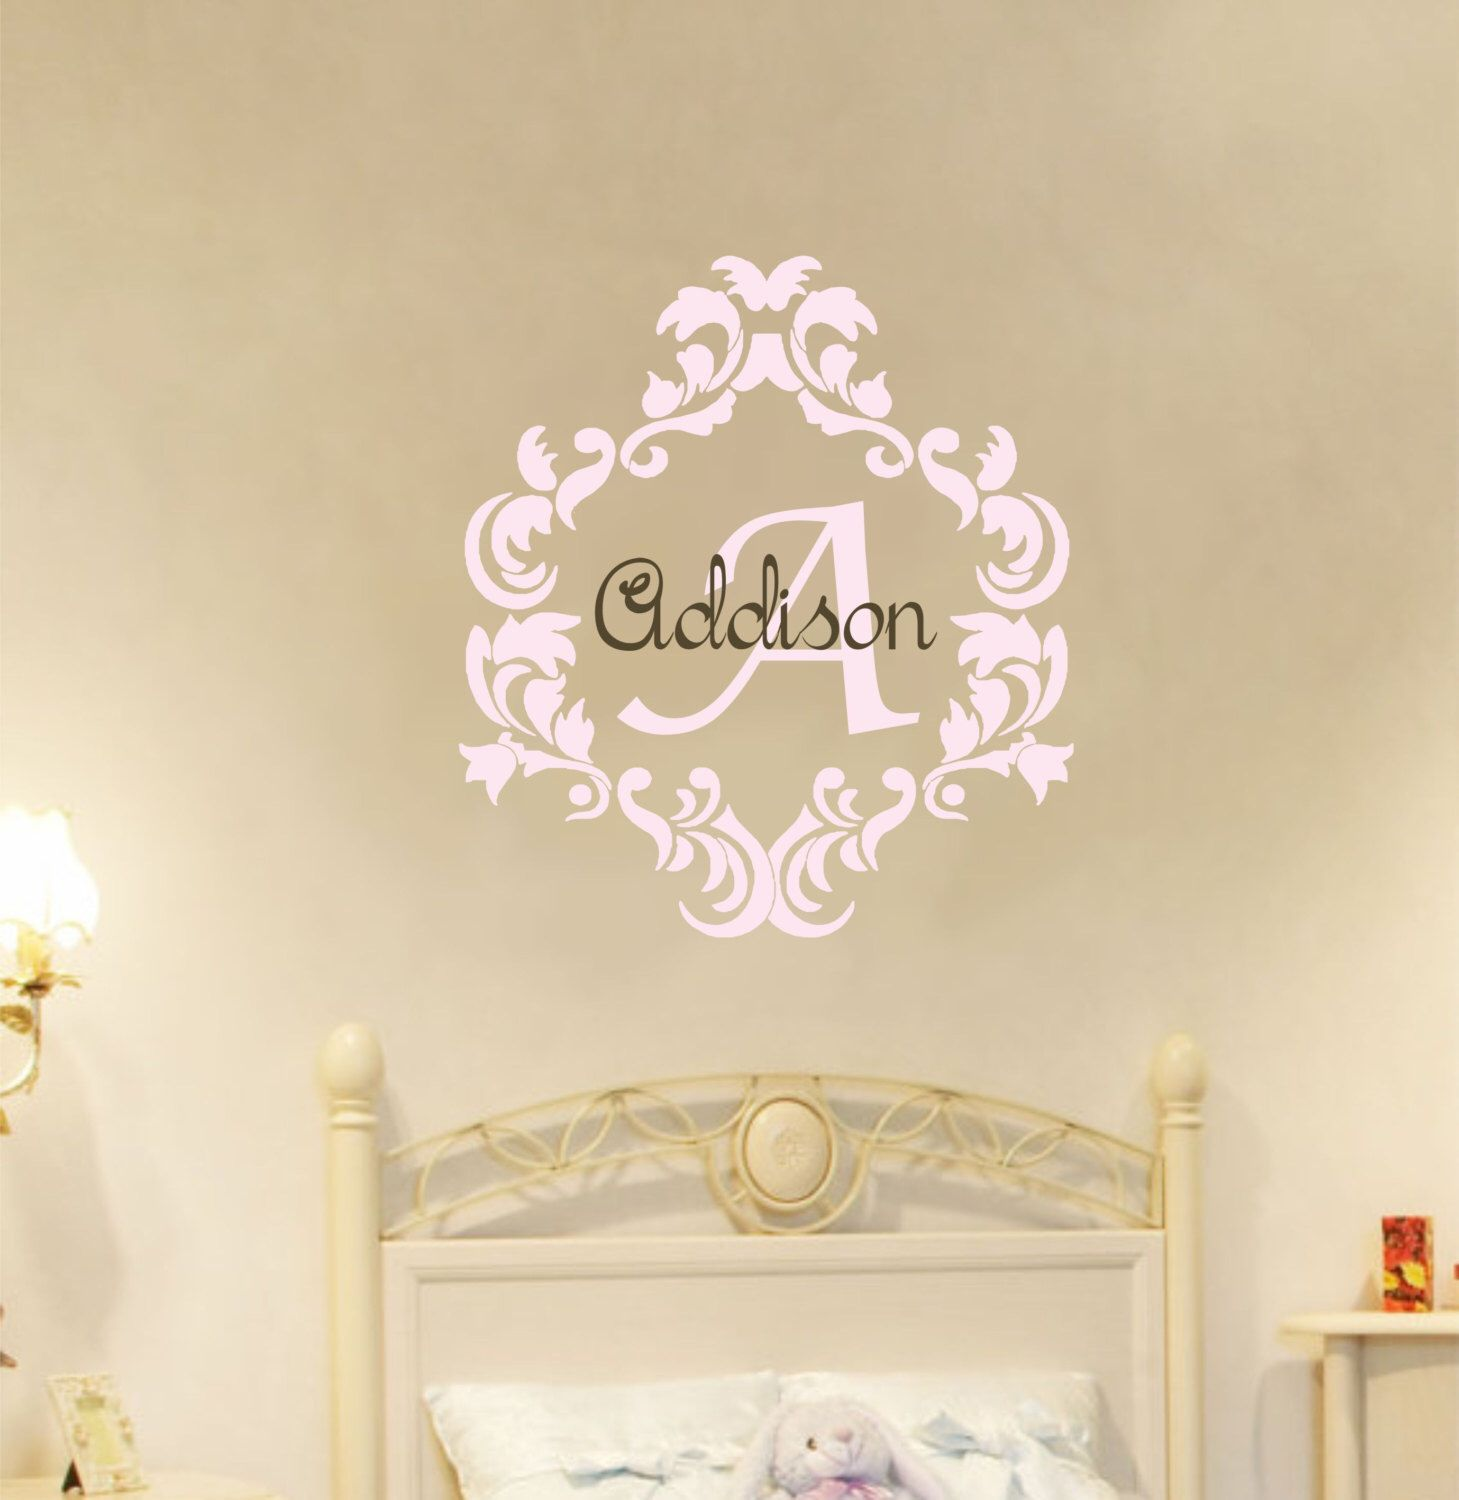 Custom Vinyl Wall Decals Damask Custom Vinyl Decals - Custom vinyl wall decals nursery